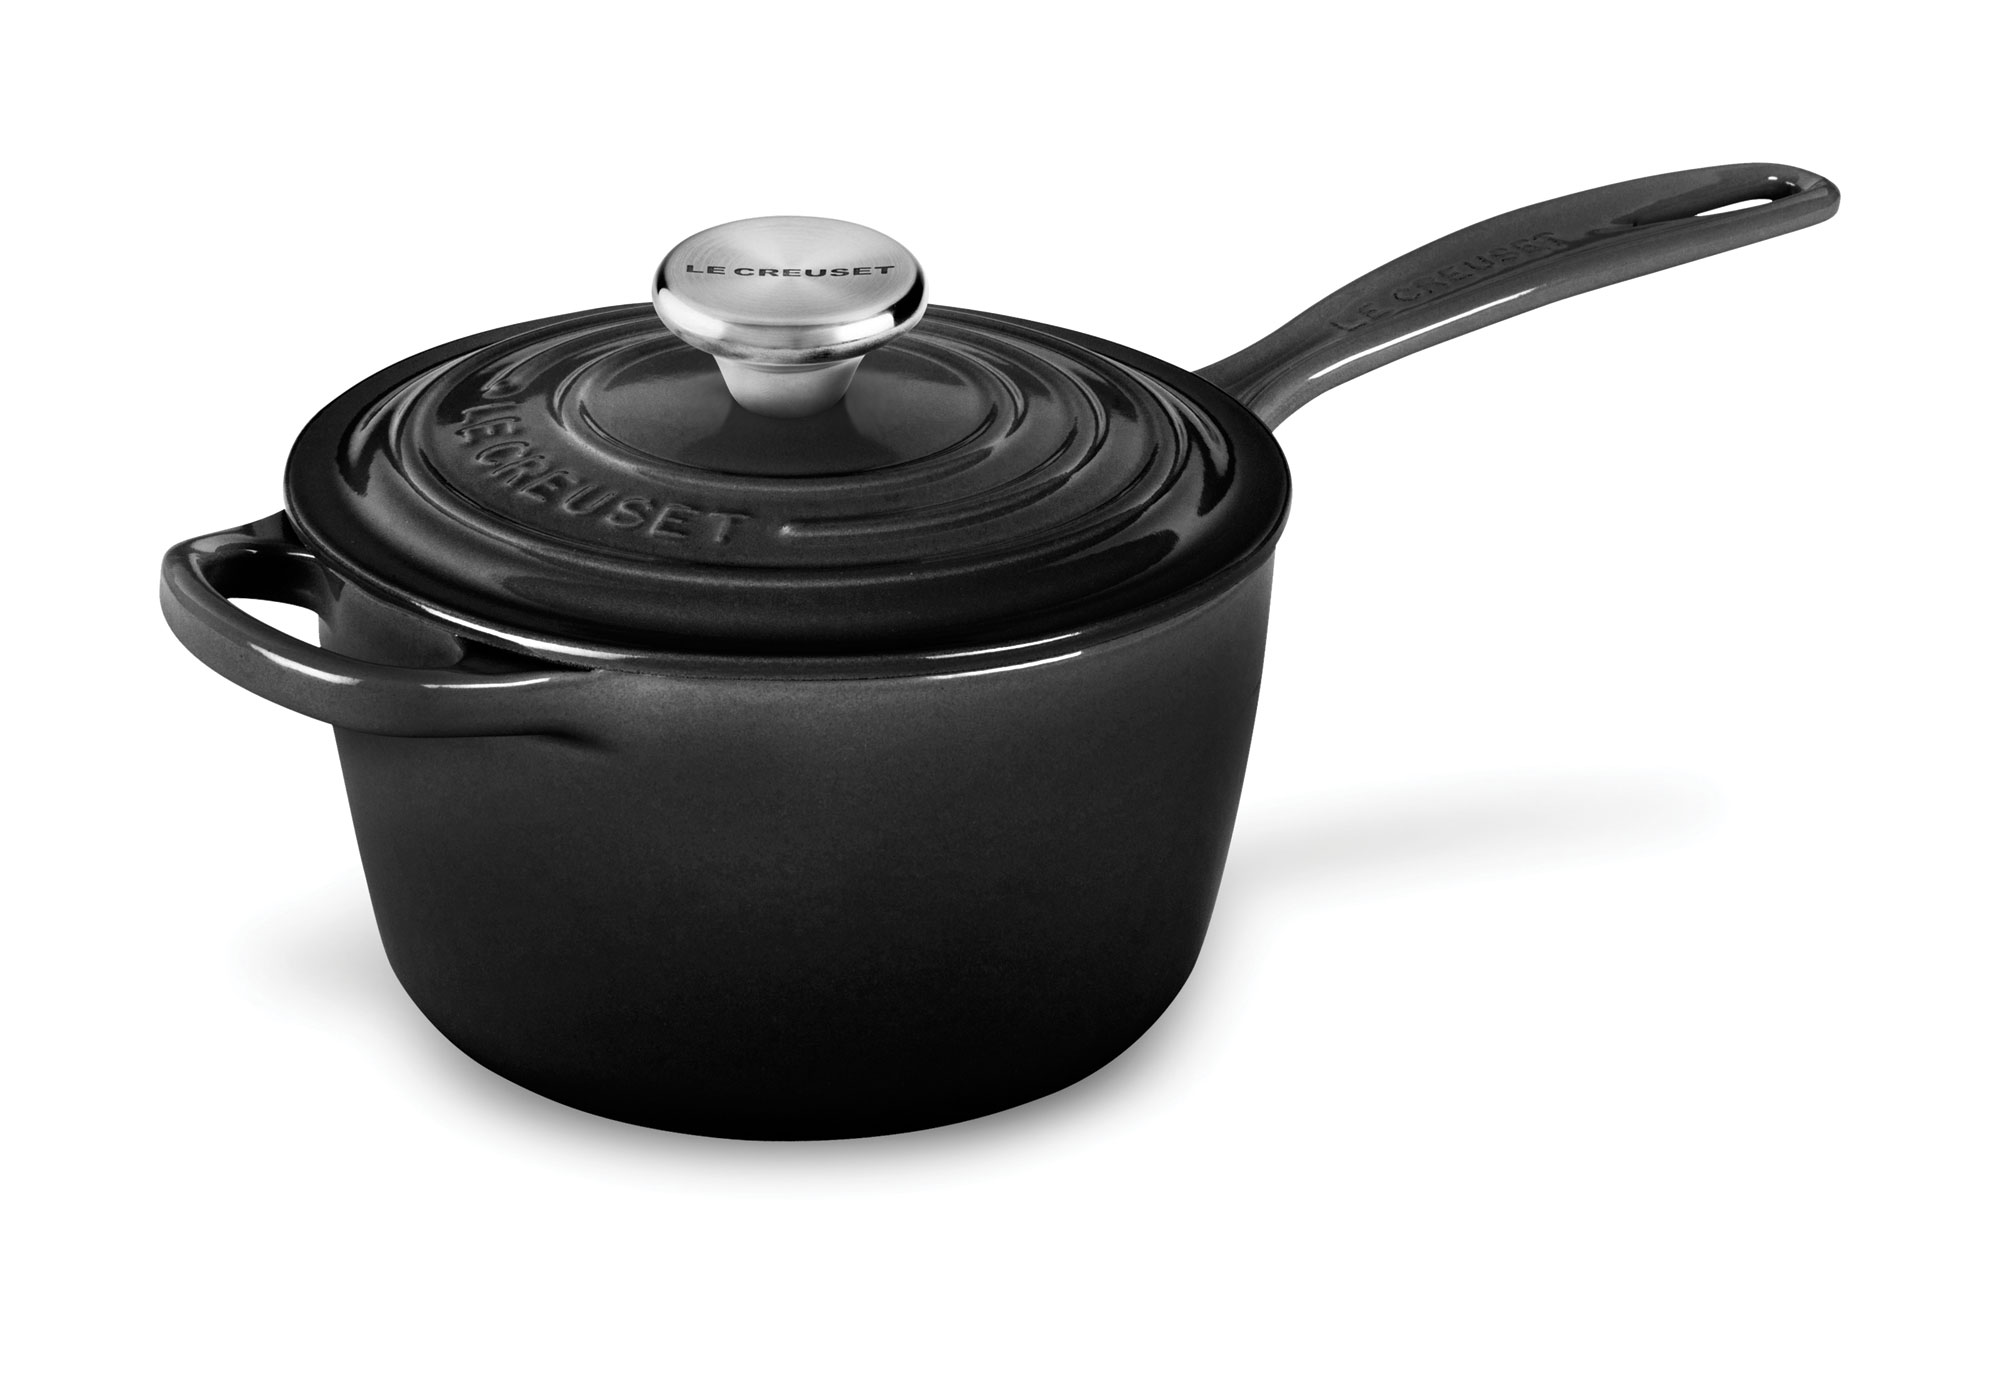 Le Creuset Signature Cast Iron Saucepan 1 75 Quart Black